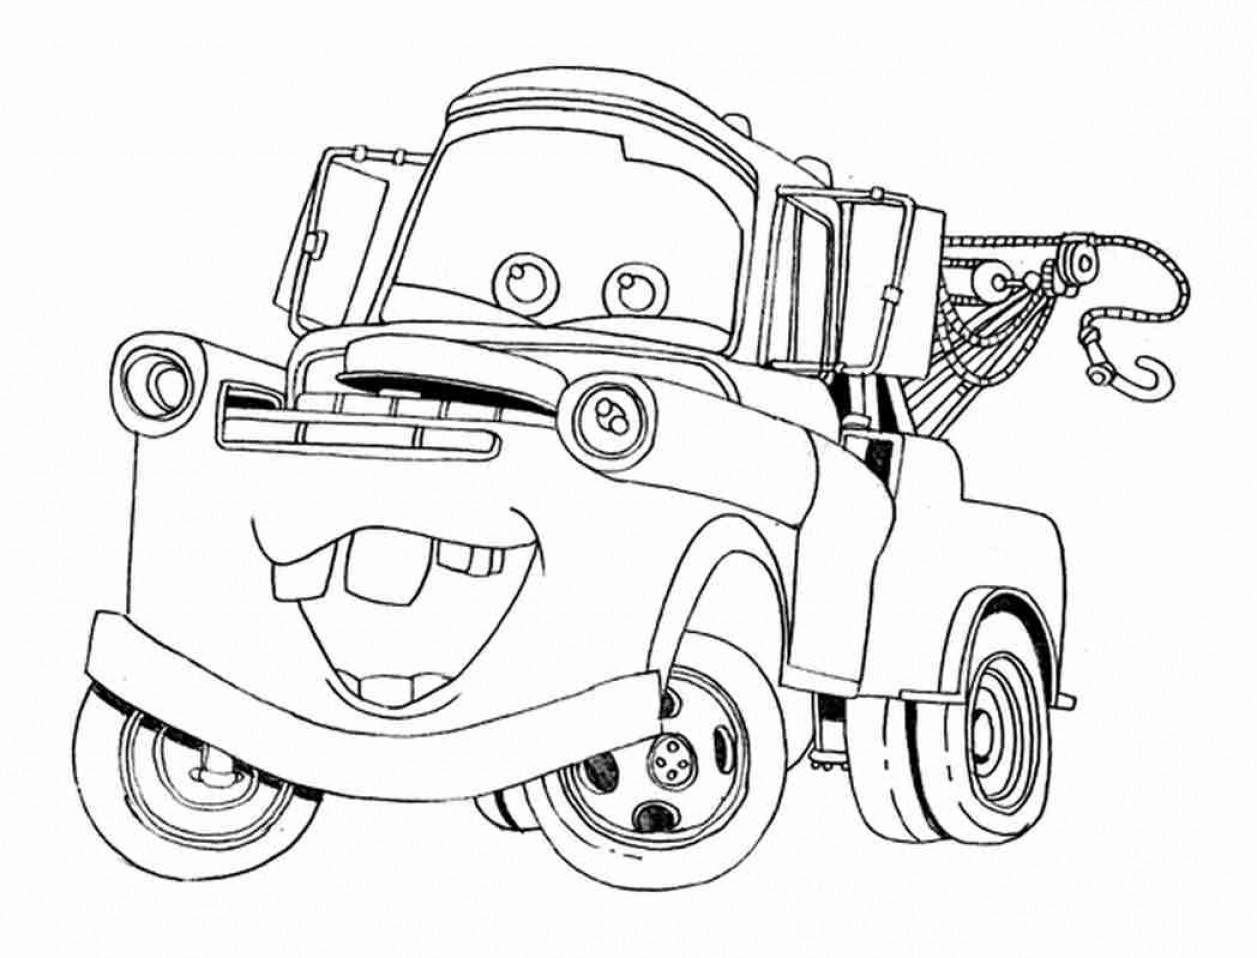 tow mater coloring pictures tow mater drawing at getdrawings free download coloring tow mater pictures